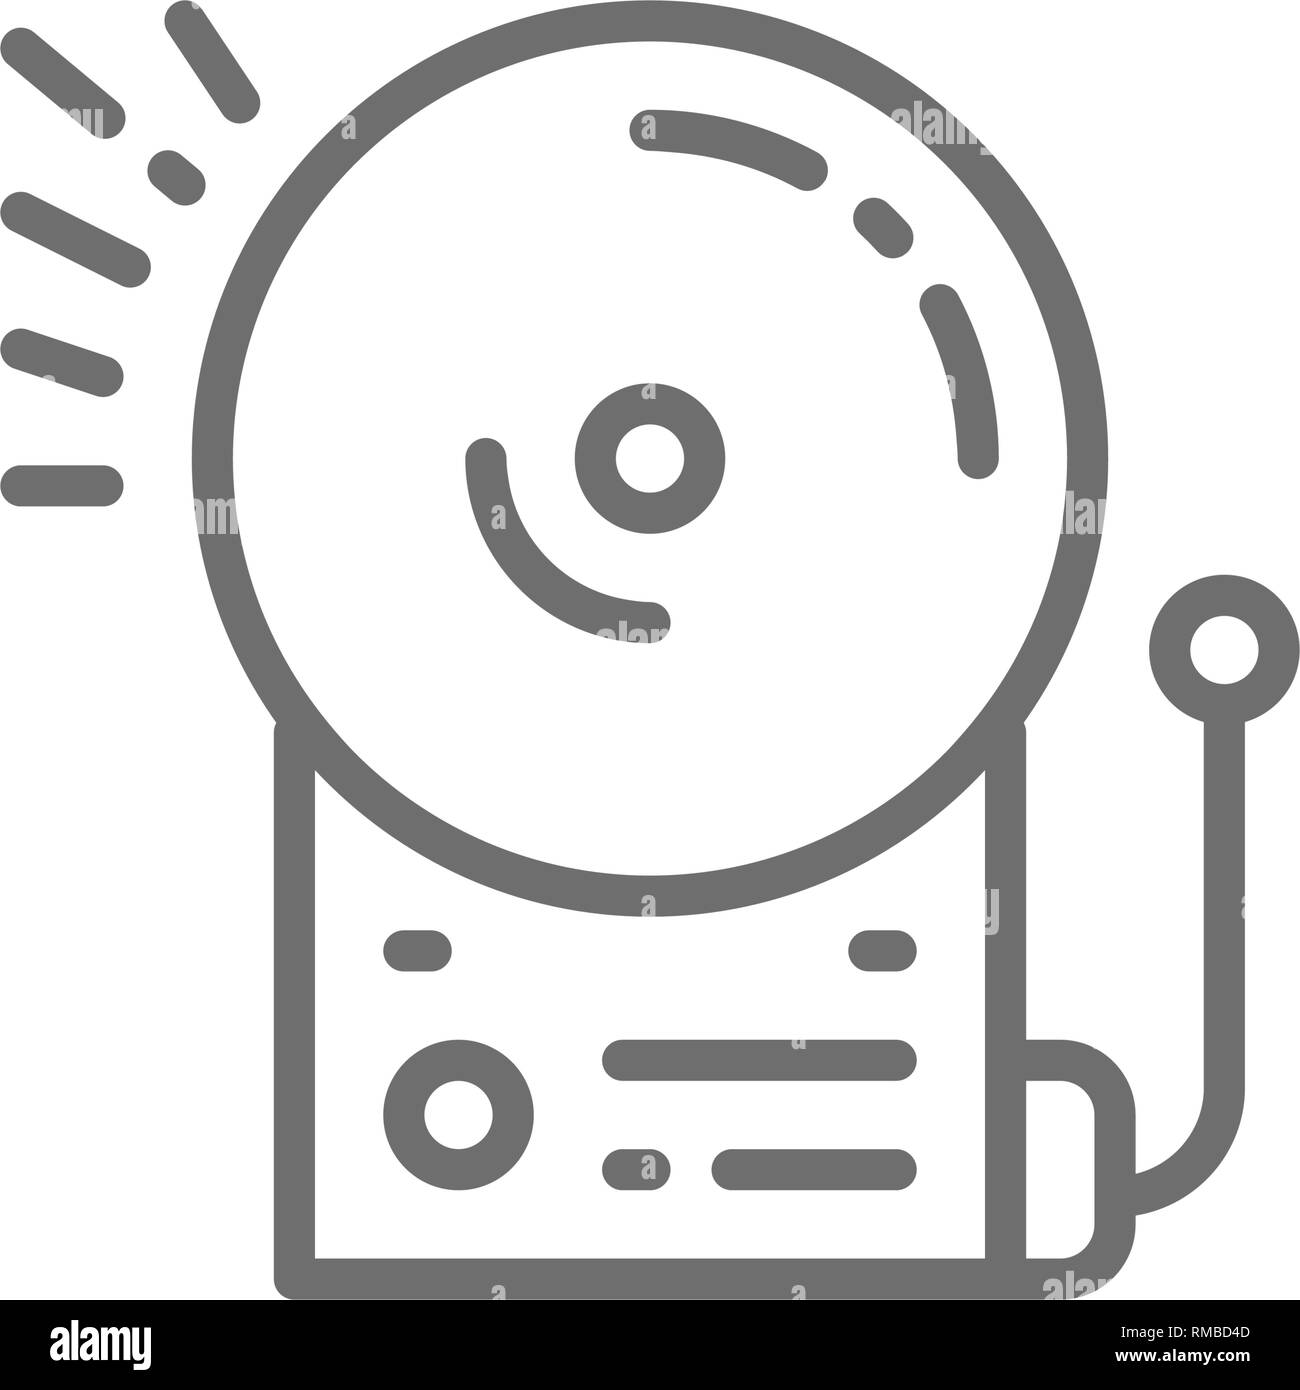 Fire alarm, school bell line icon. - Stock Image